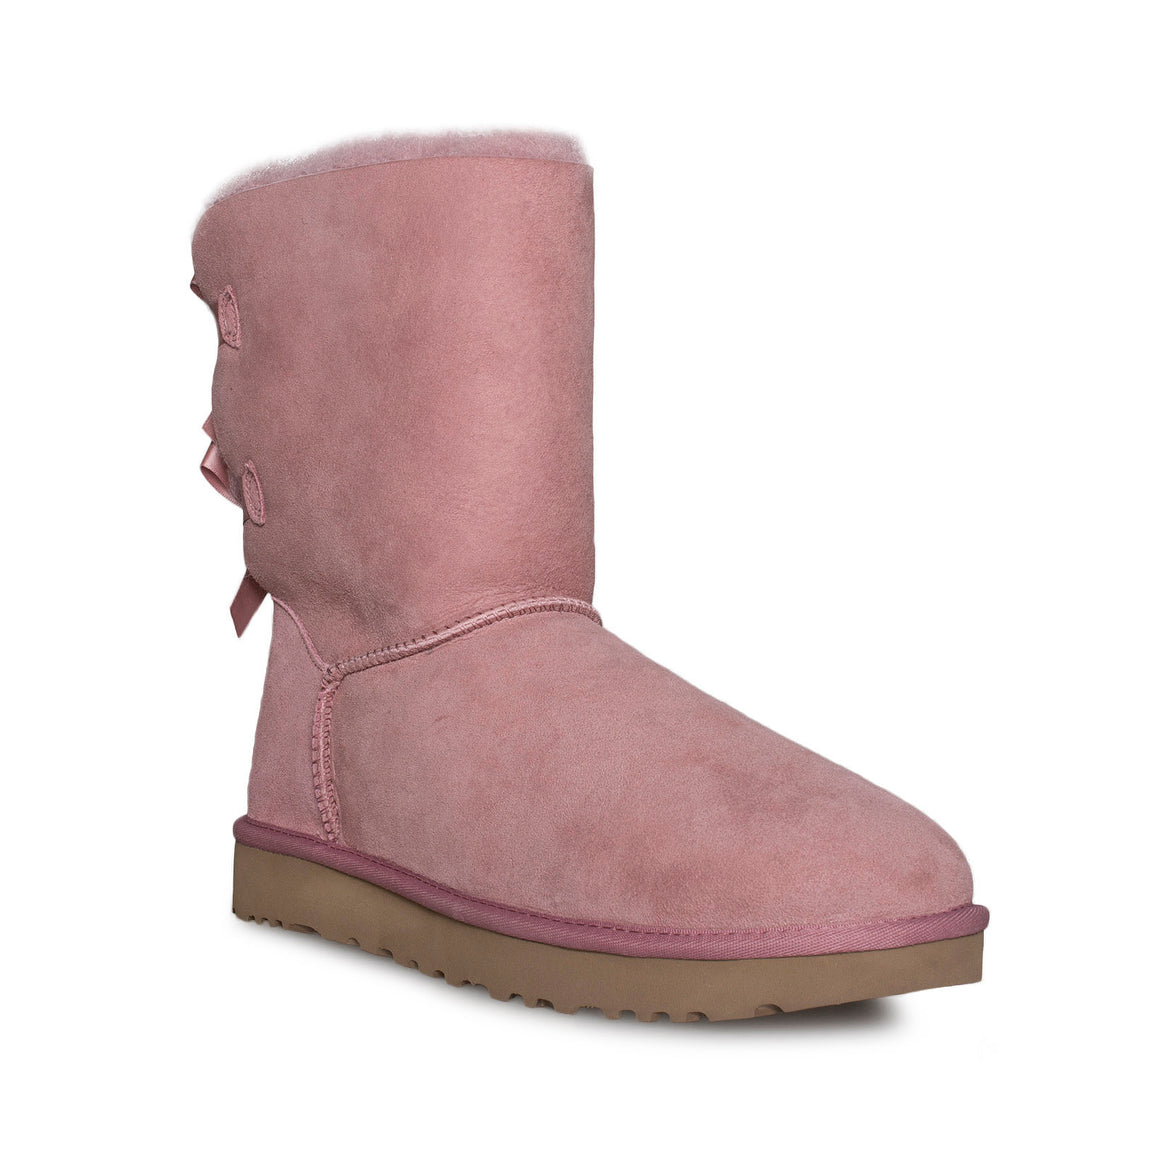 UGG Bailey Bow II Pink Dawn Boots - Women's